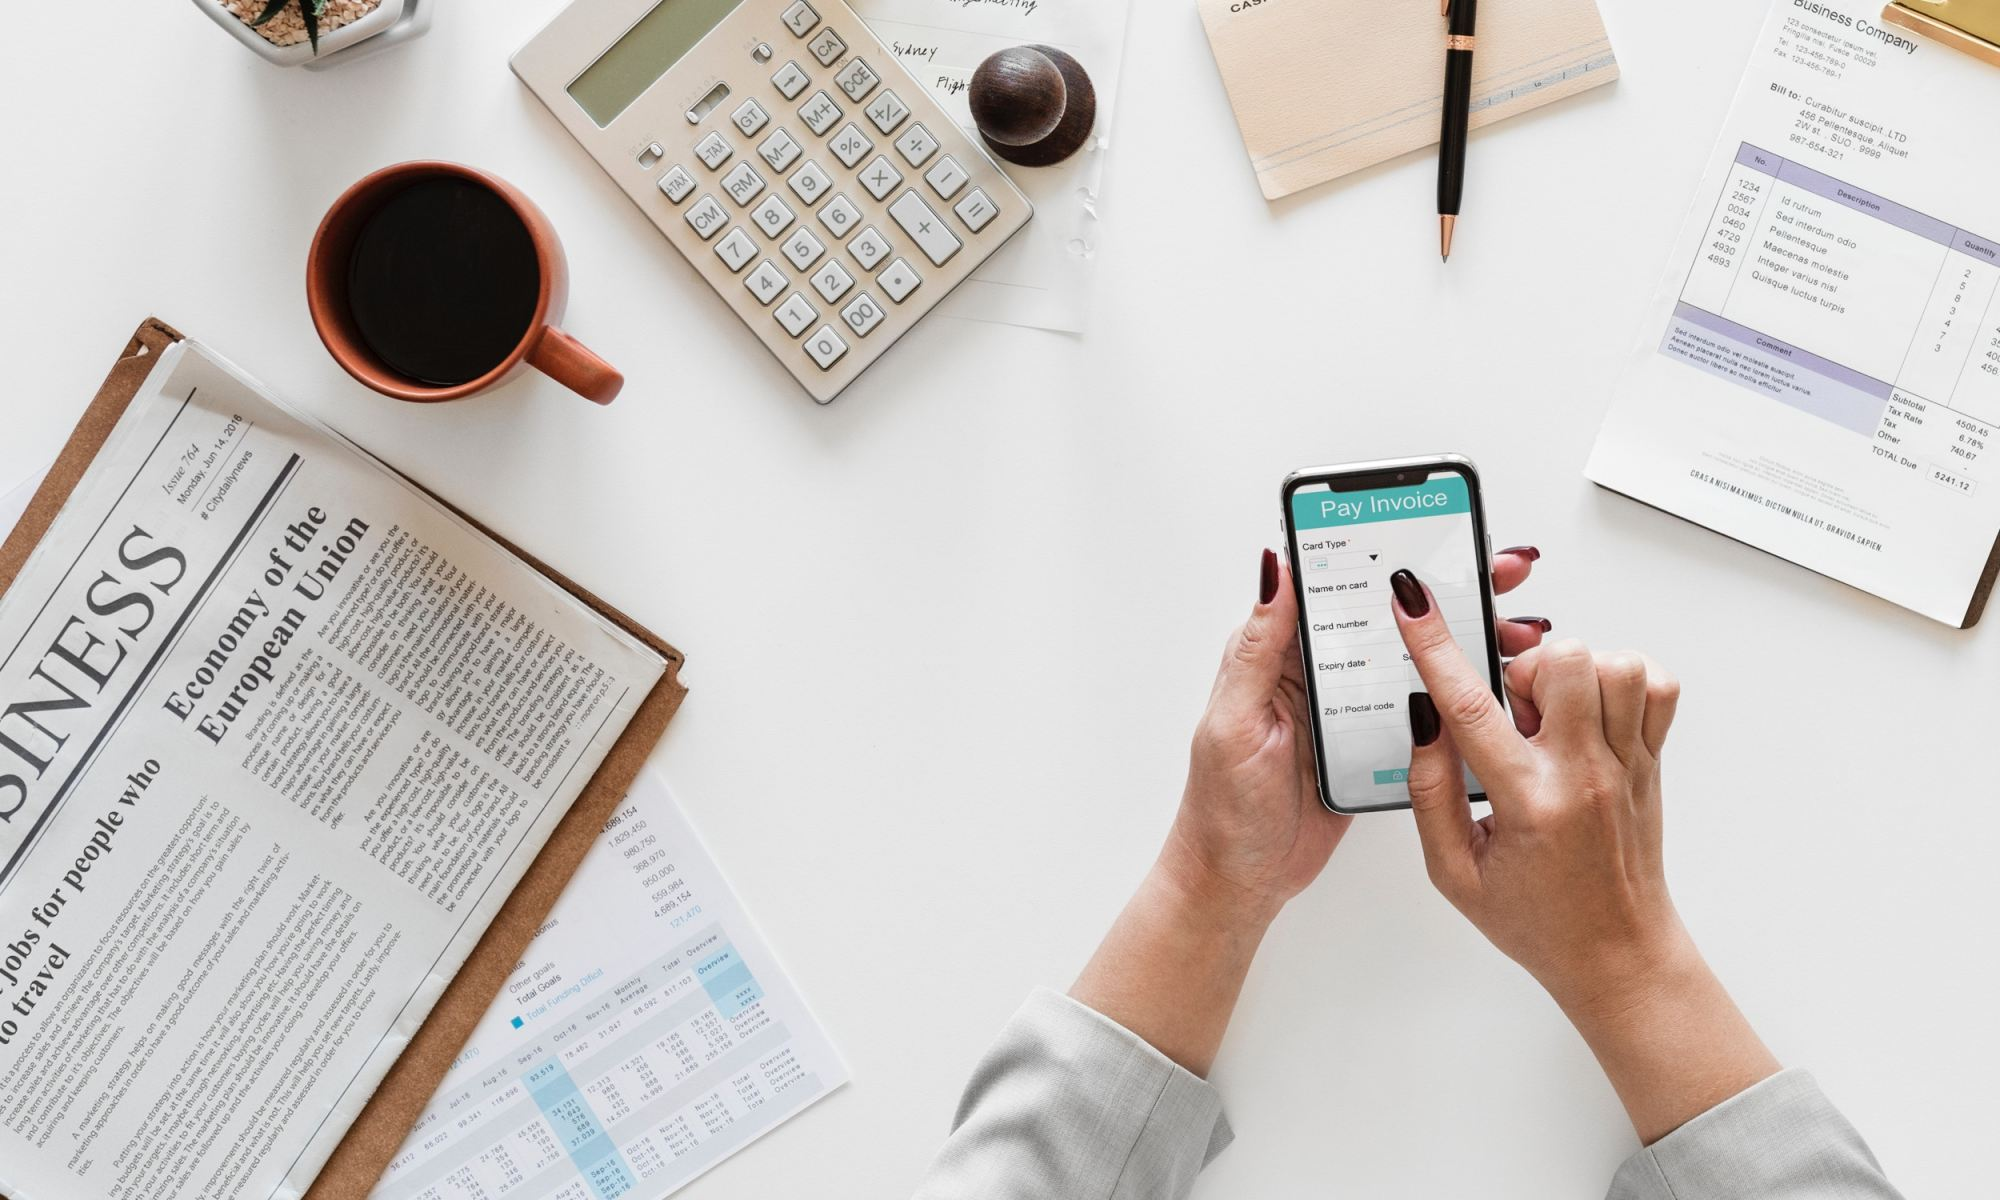 Budgeting and Paying Influencers